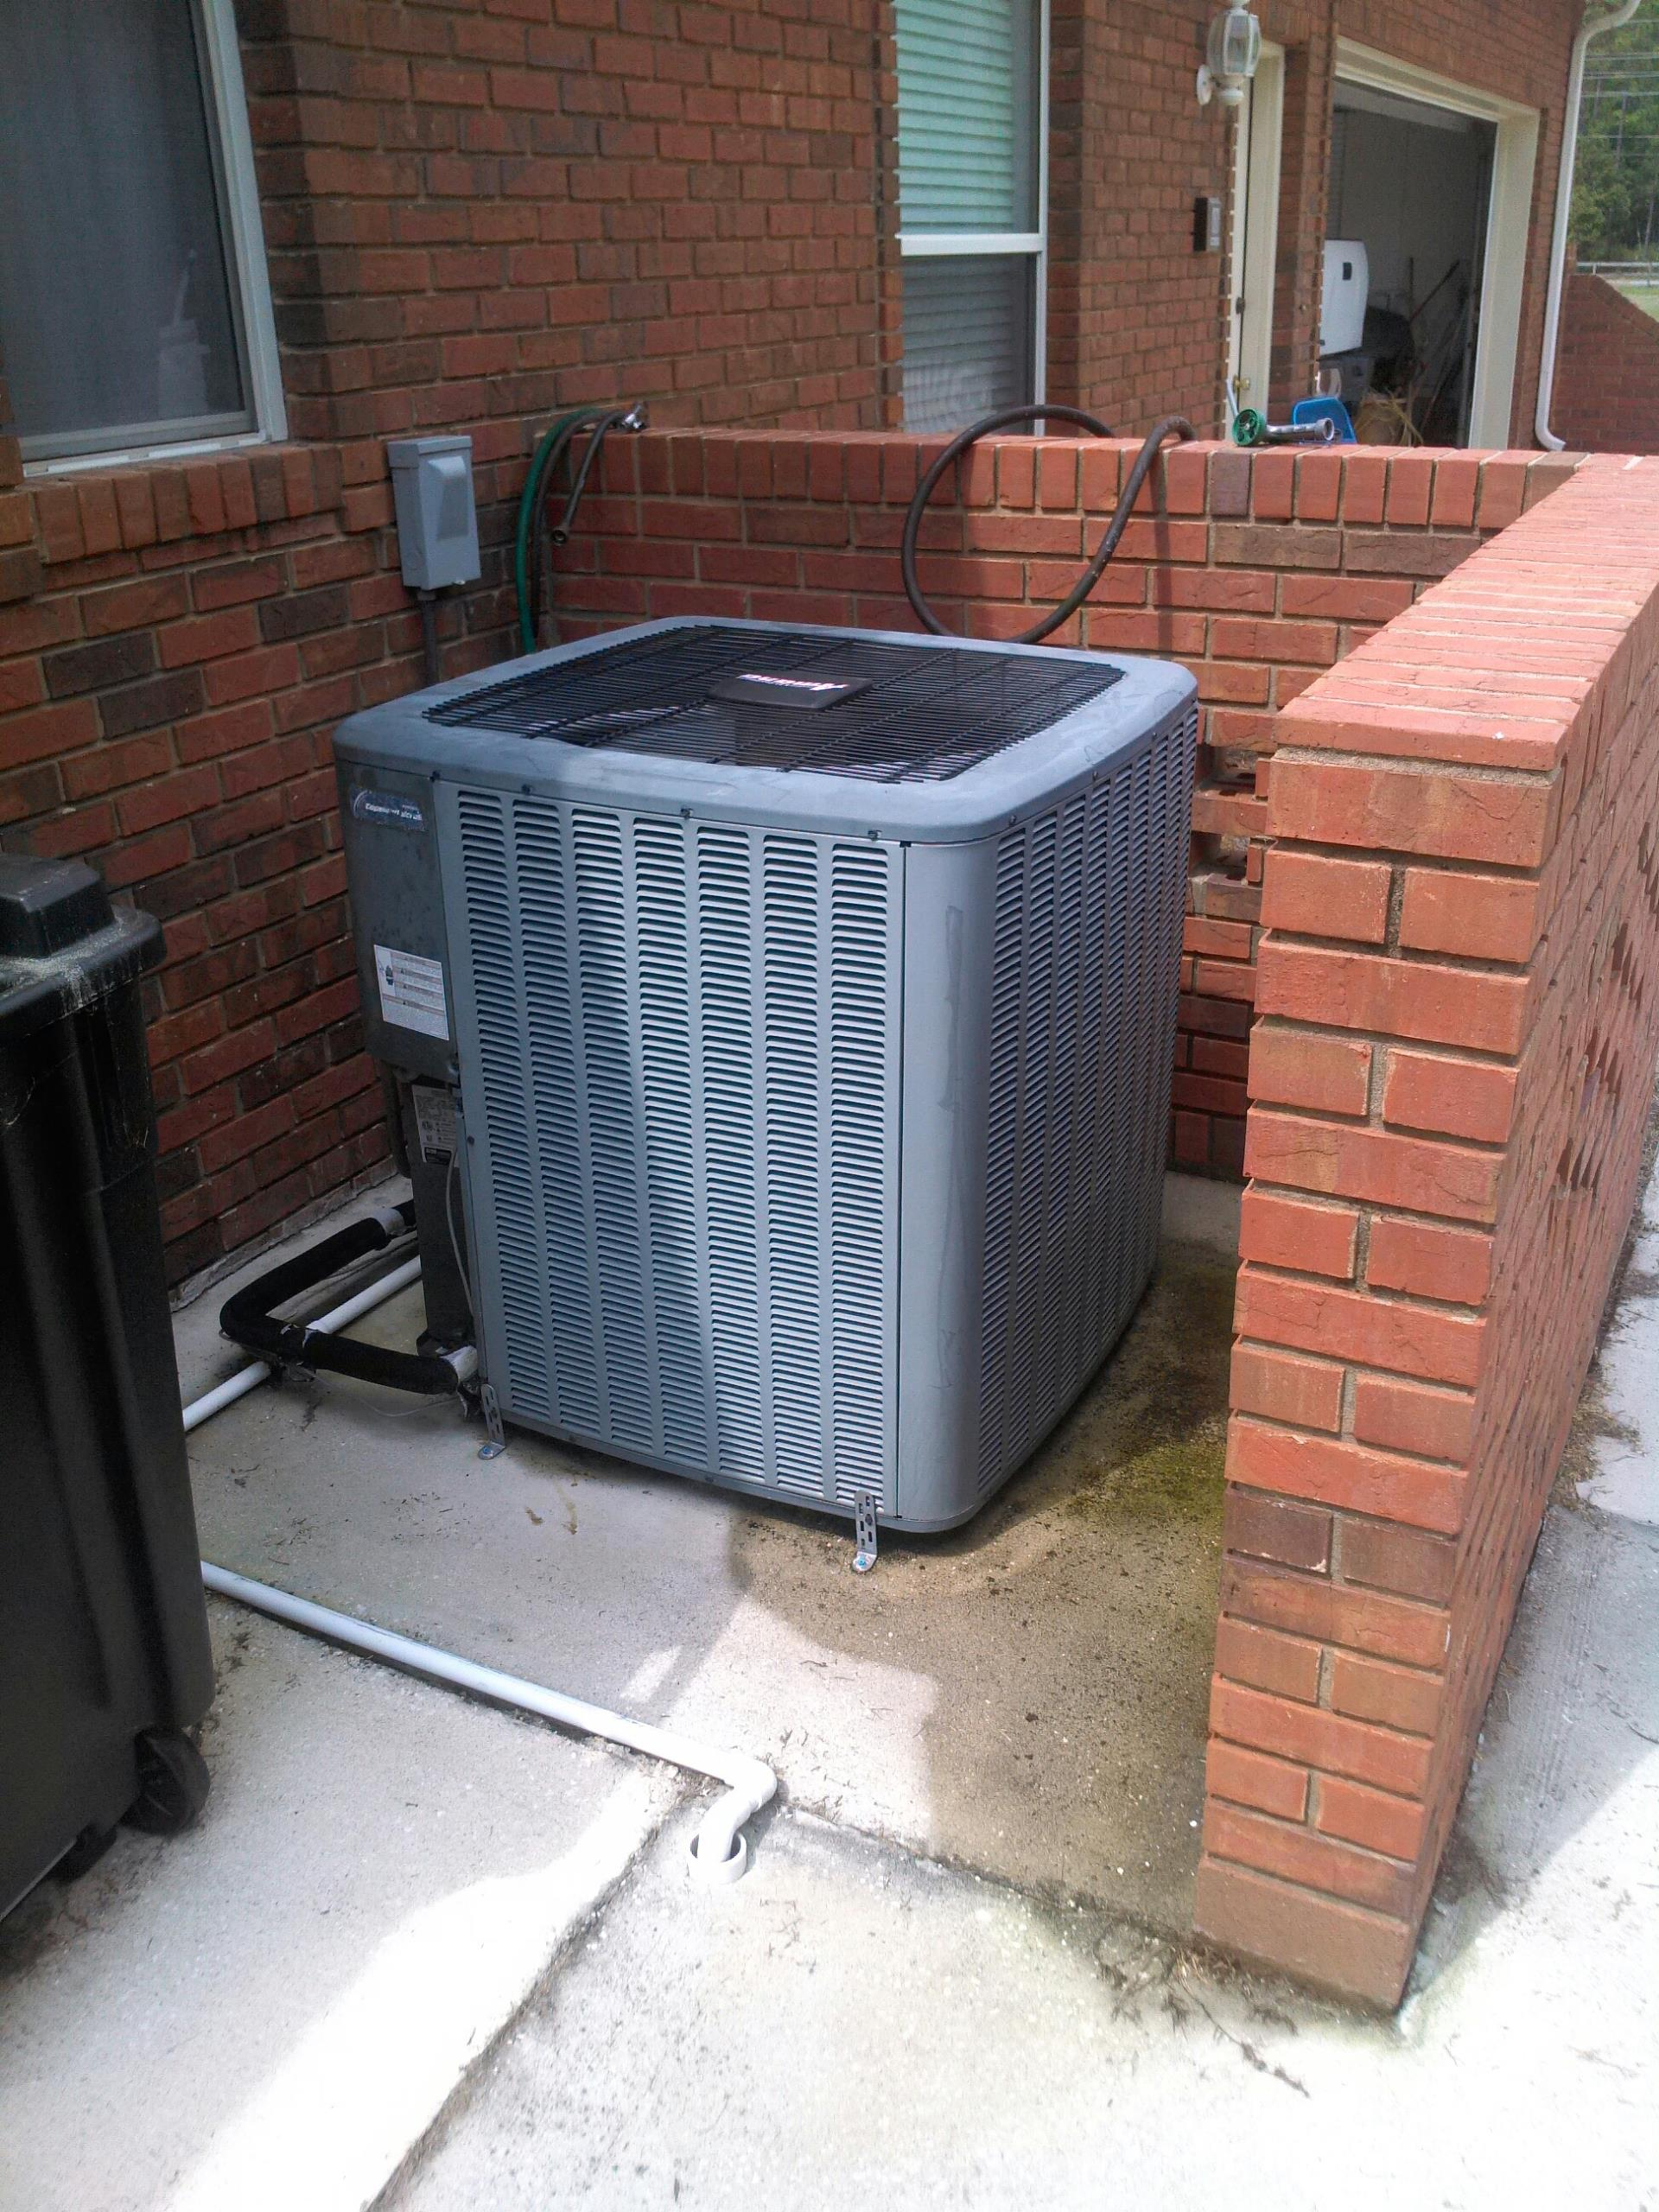 Saint Johns, FL - Performed maintenance on two heat pump systems. One Lennox and one Amana.